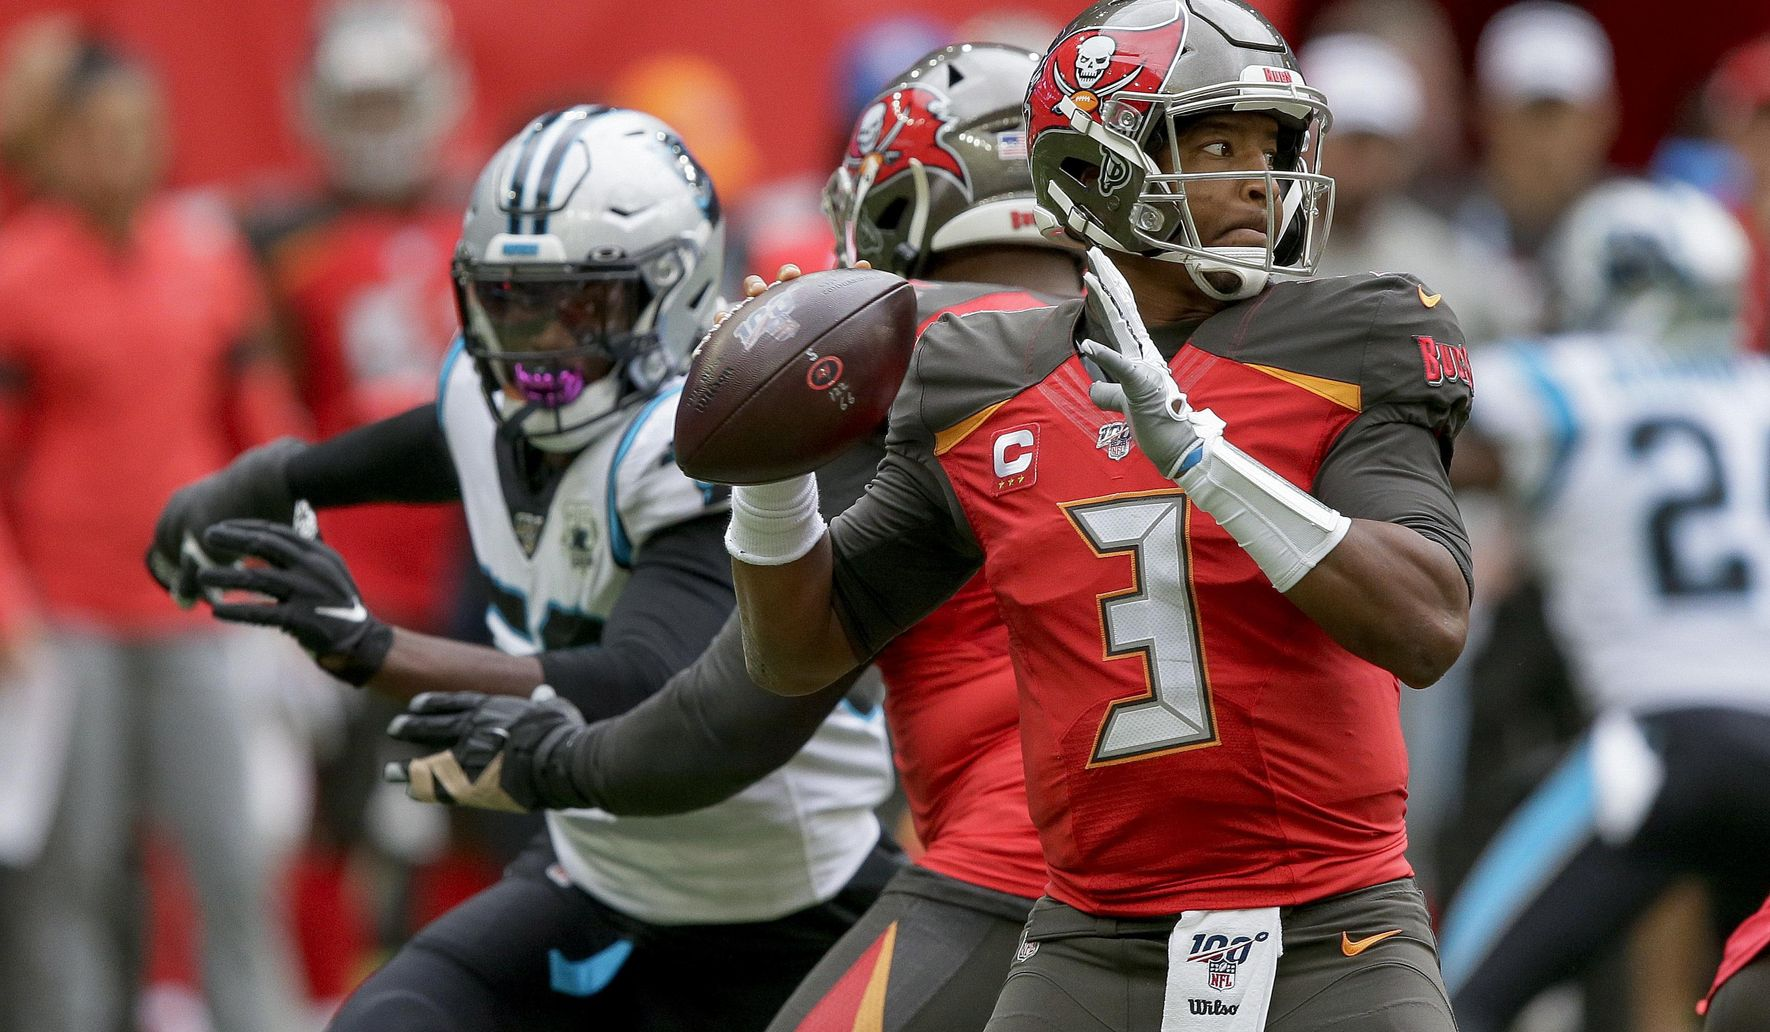 Panthers_buccaneers_football_99821_c0-142-3383-2114_s1770x1032